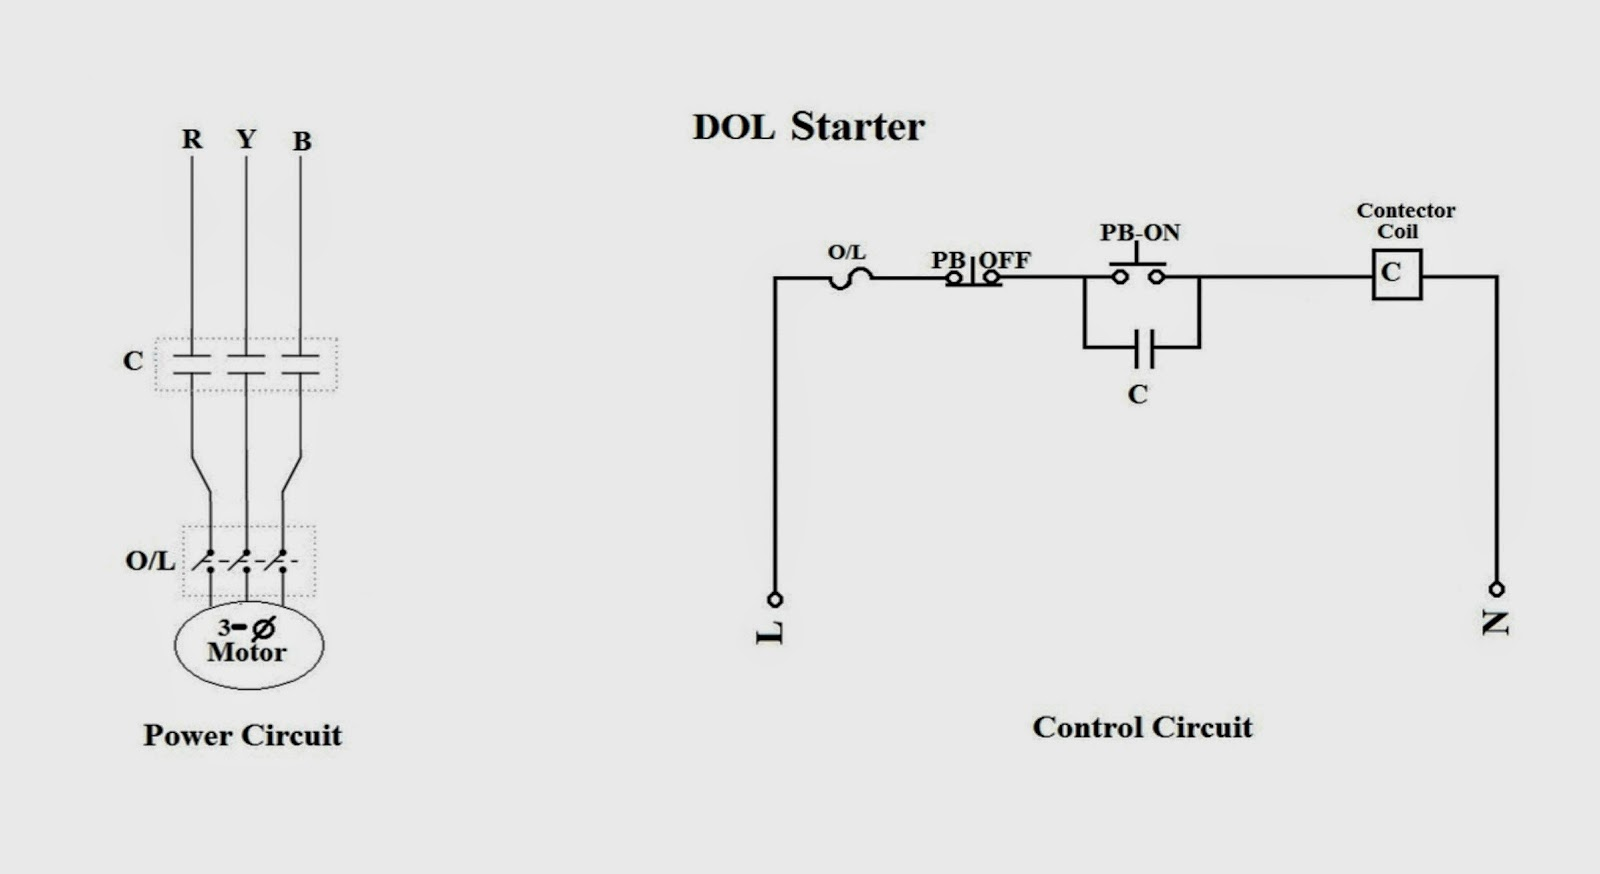 Addressable Fire Alarm System Schematic Diagram additionally Copeland Refrigeration Wiring Diagram as well F150 Wiring Diagram 2017 2010 07 30 201842 A1   Wiring Diagram additionally Cutler Hammer Starter Wiring Diagram as well Busbar Rising Main System Circuit. on 3 phase starter wiring diagram